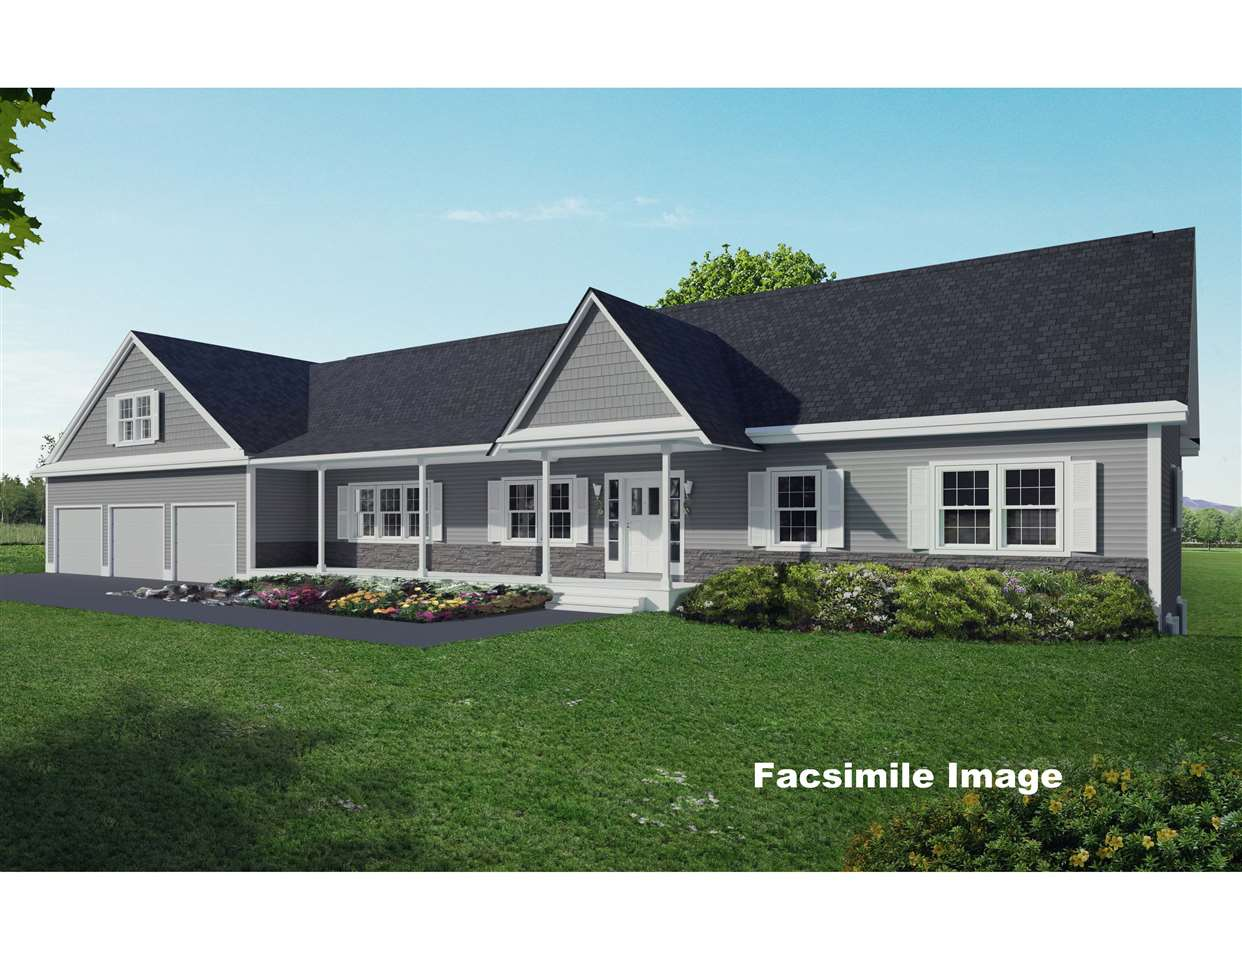 MLS 4708883: 50 Steele Road-Unit 8, Derry NH